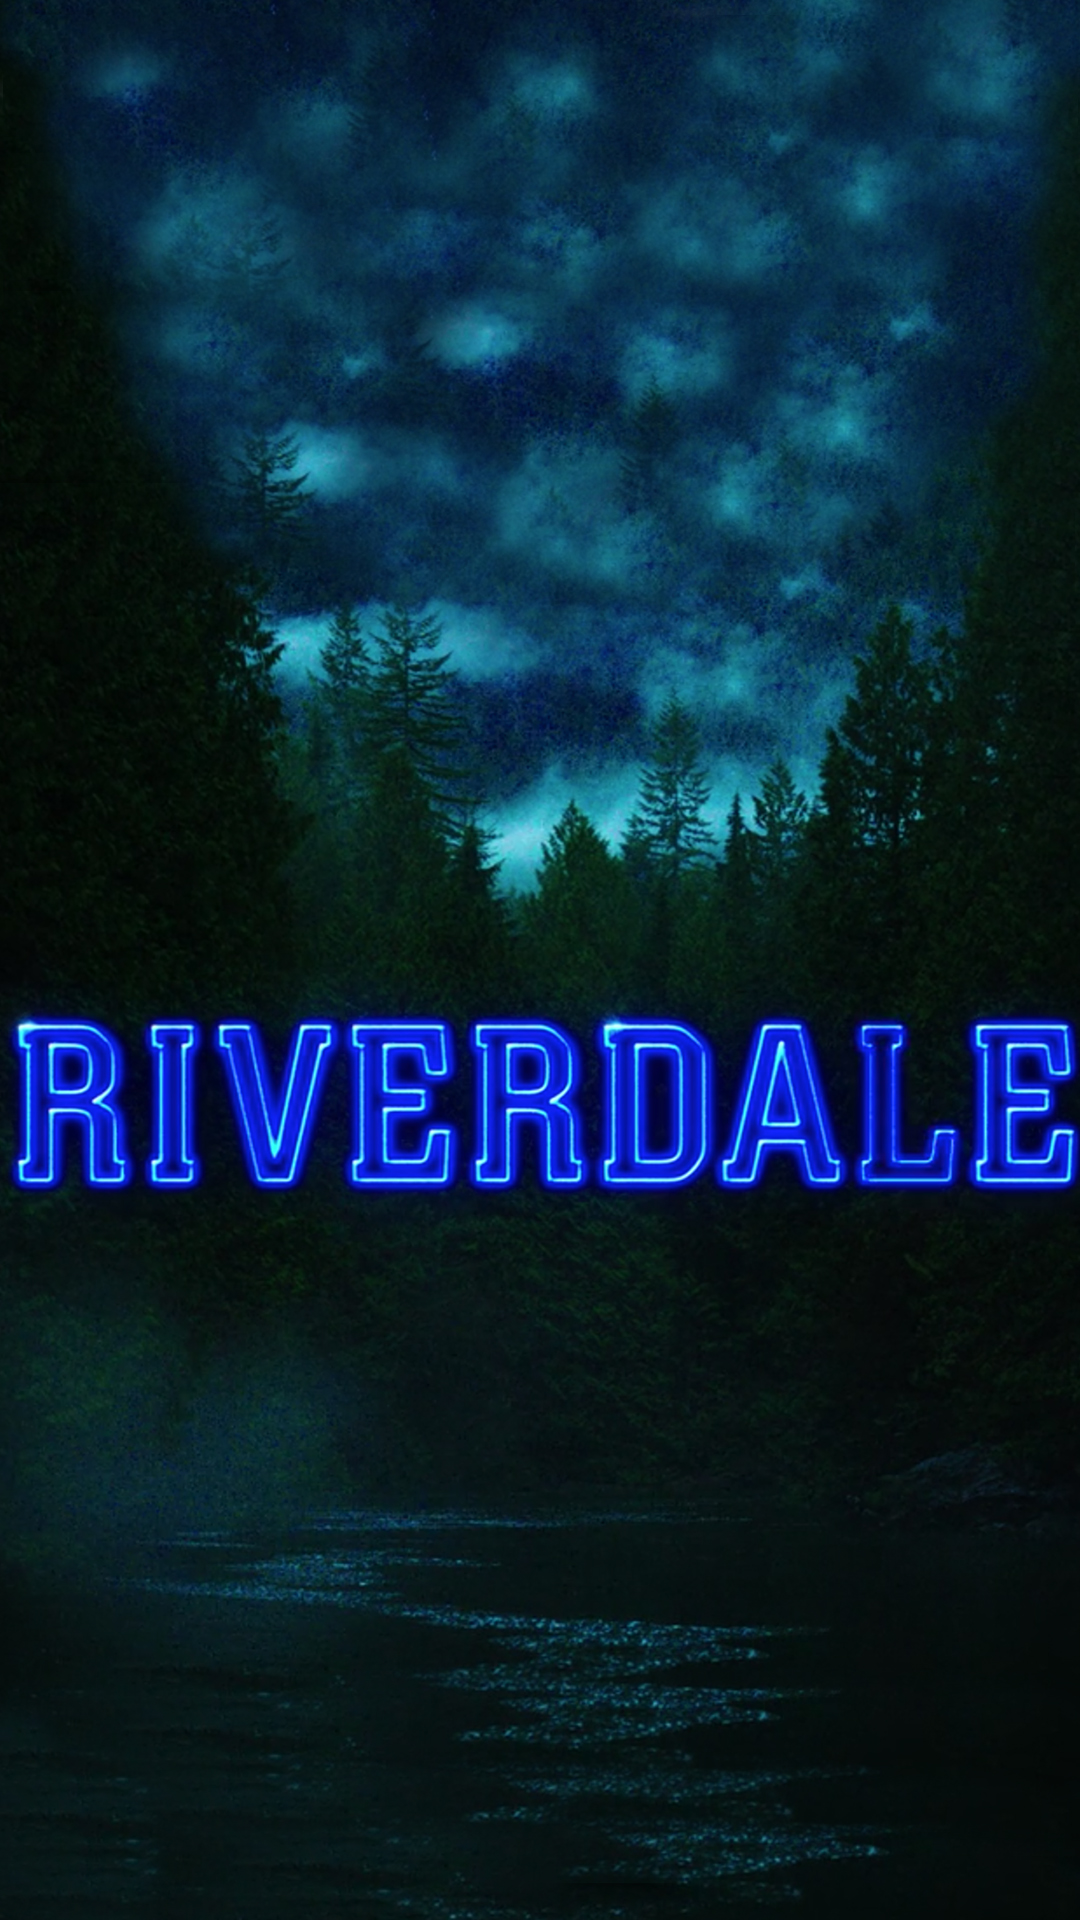 Riverdale Wallpaper Cute Character Graphics For Your Phone